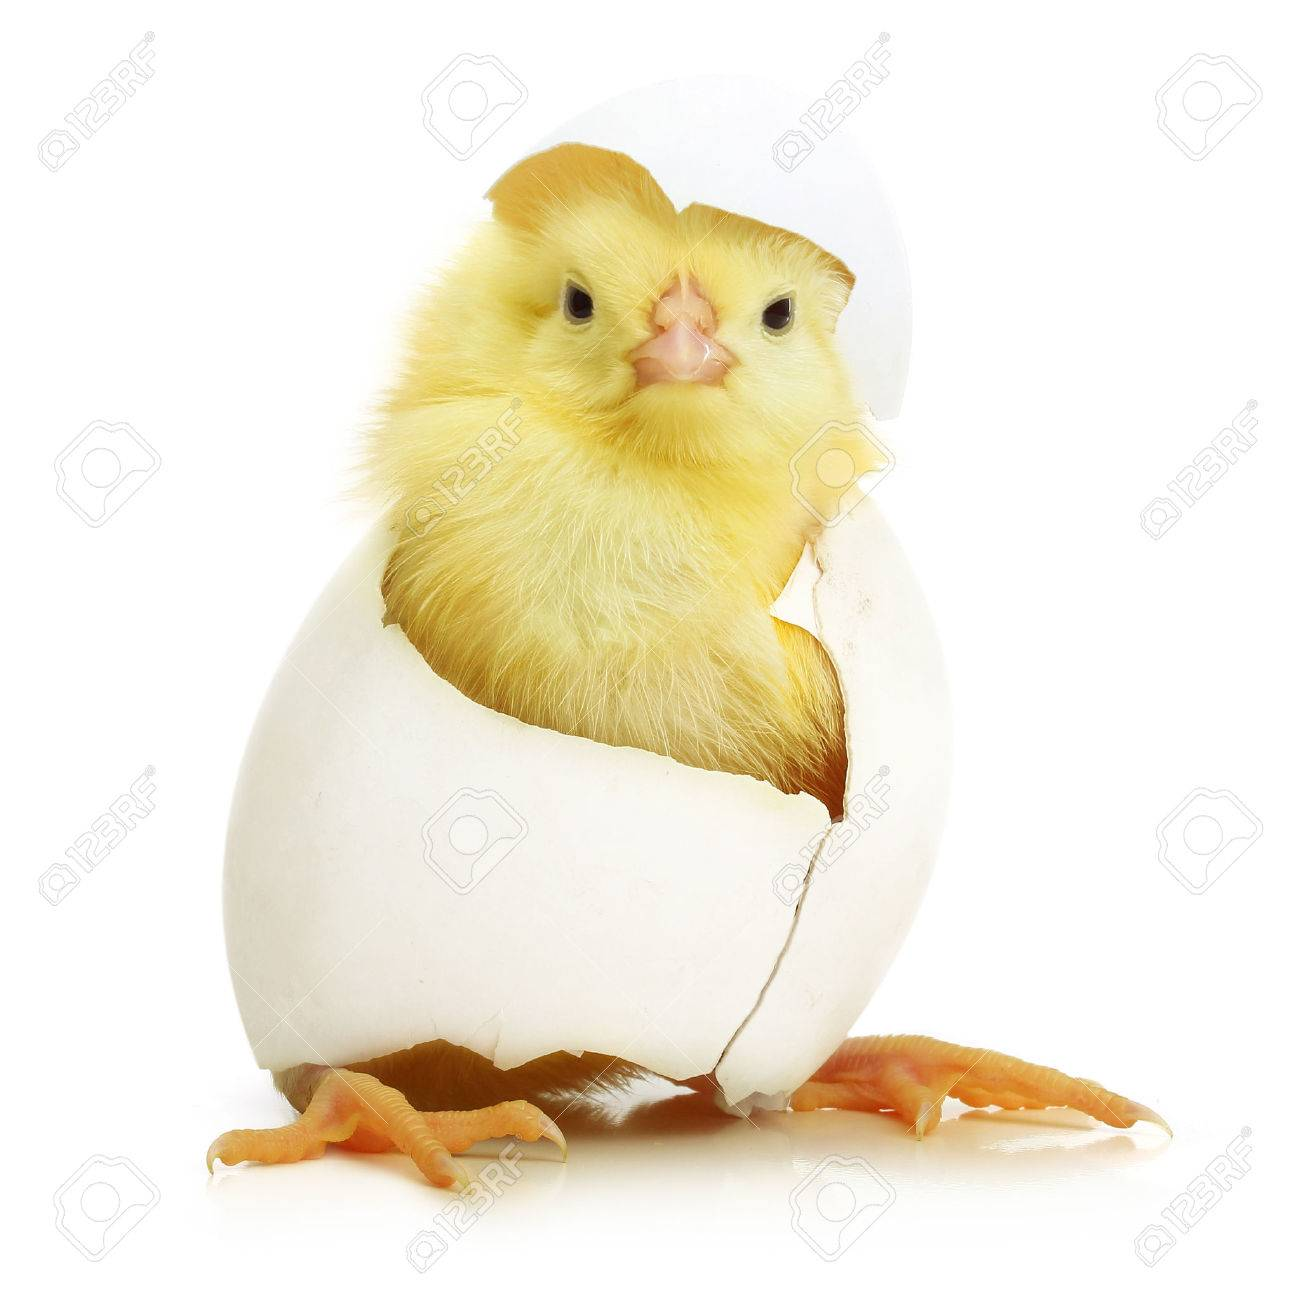 Cute little chicken coming out of a white egg isolated on white background - 61201303